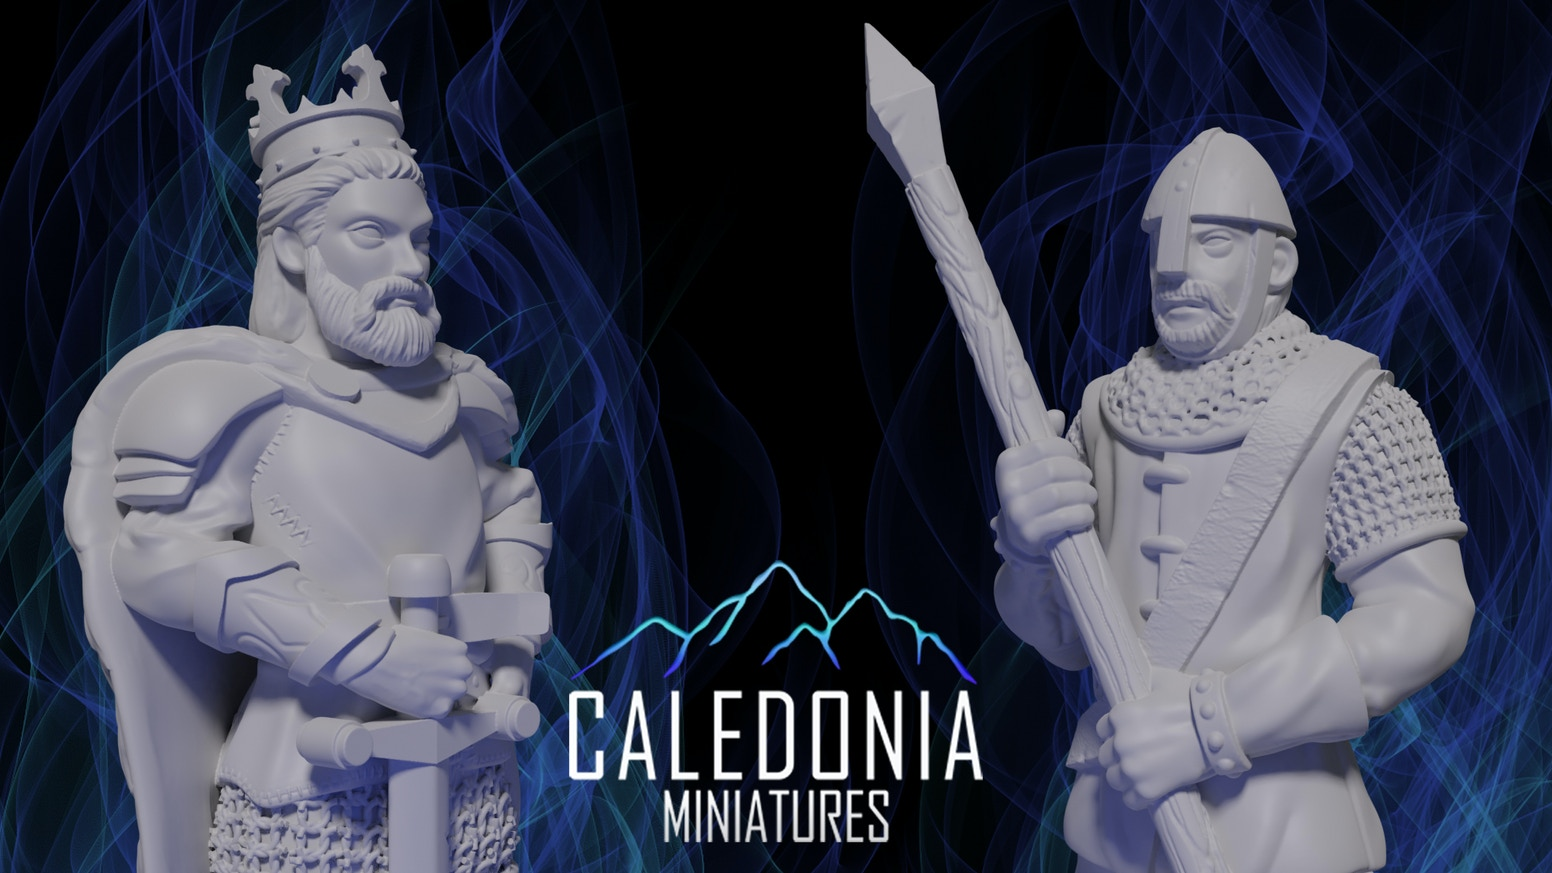 3D Printable STL Miniatures for Role Playing Tabletop Games